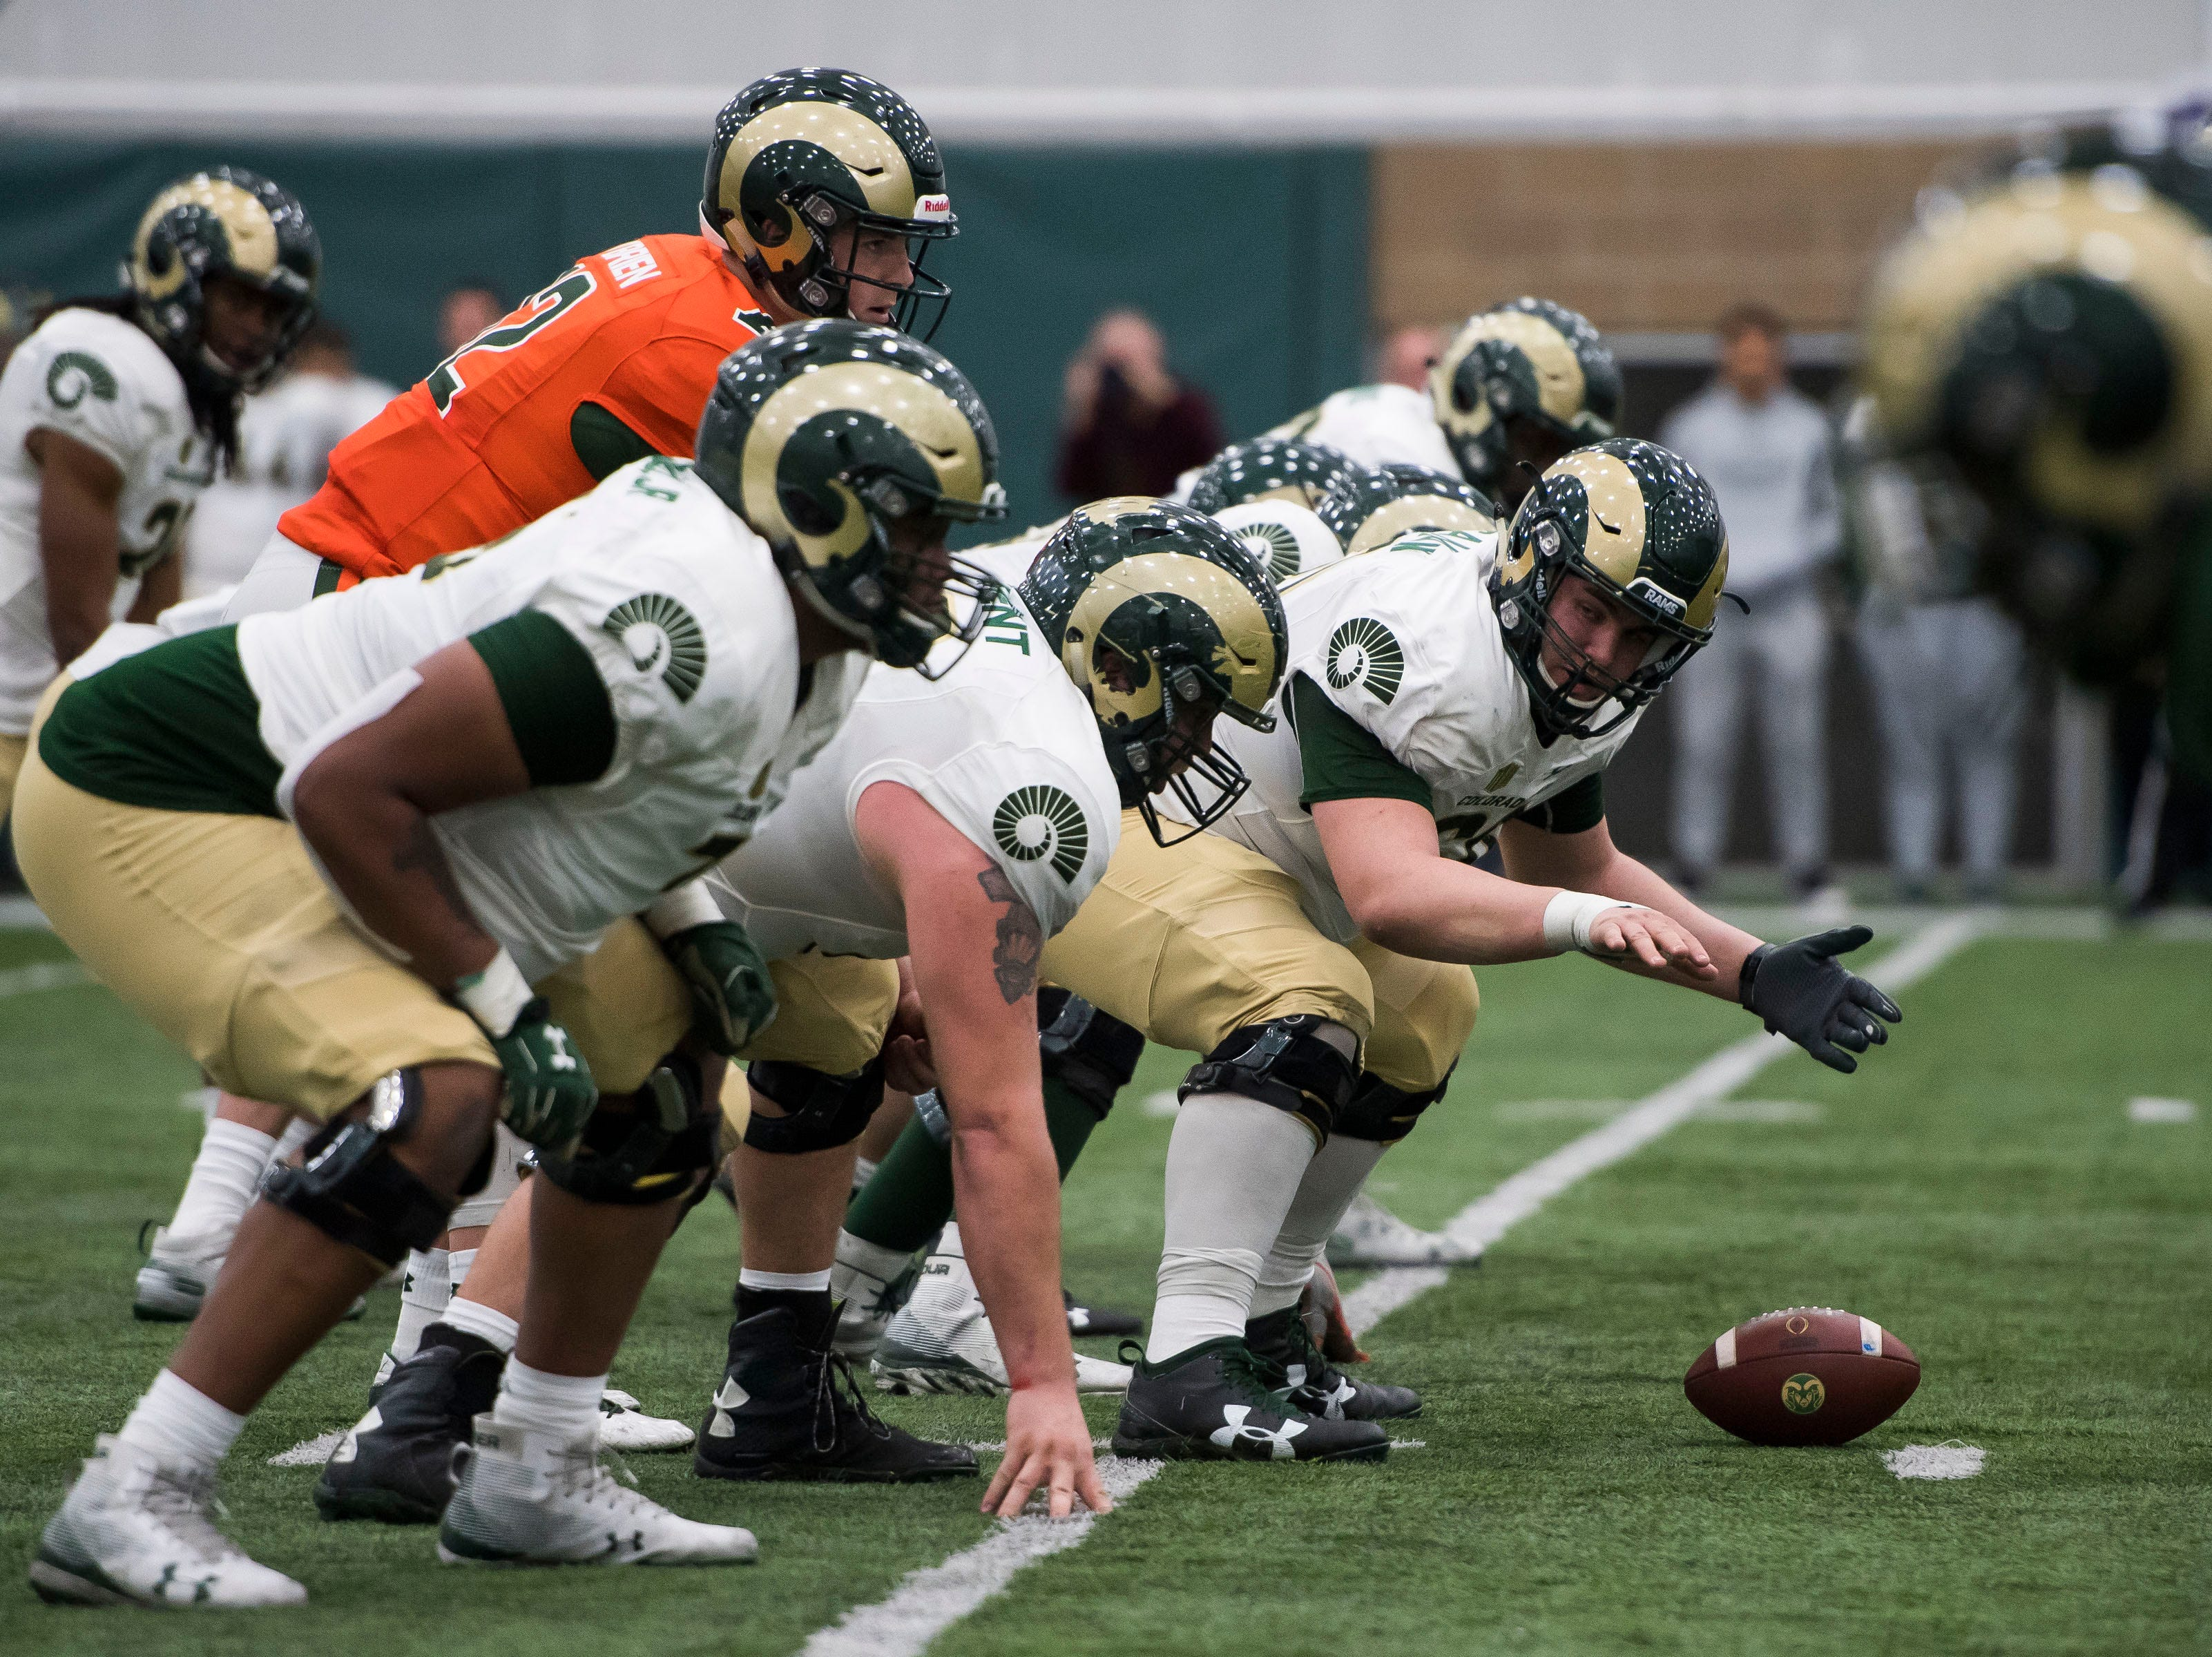 CSU freshman center Florian McCann (60) signals to the offensive line during CSU's Spring game on Thursday, March 14, 2019, at their indoor practice facility in Fort Collins, Colo.